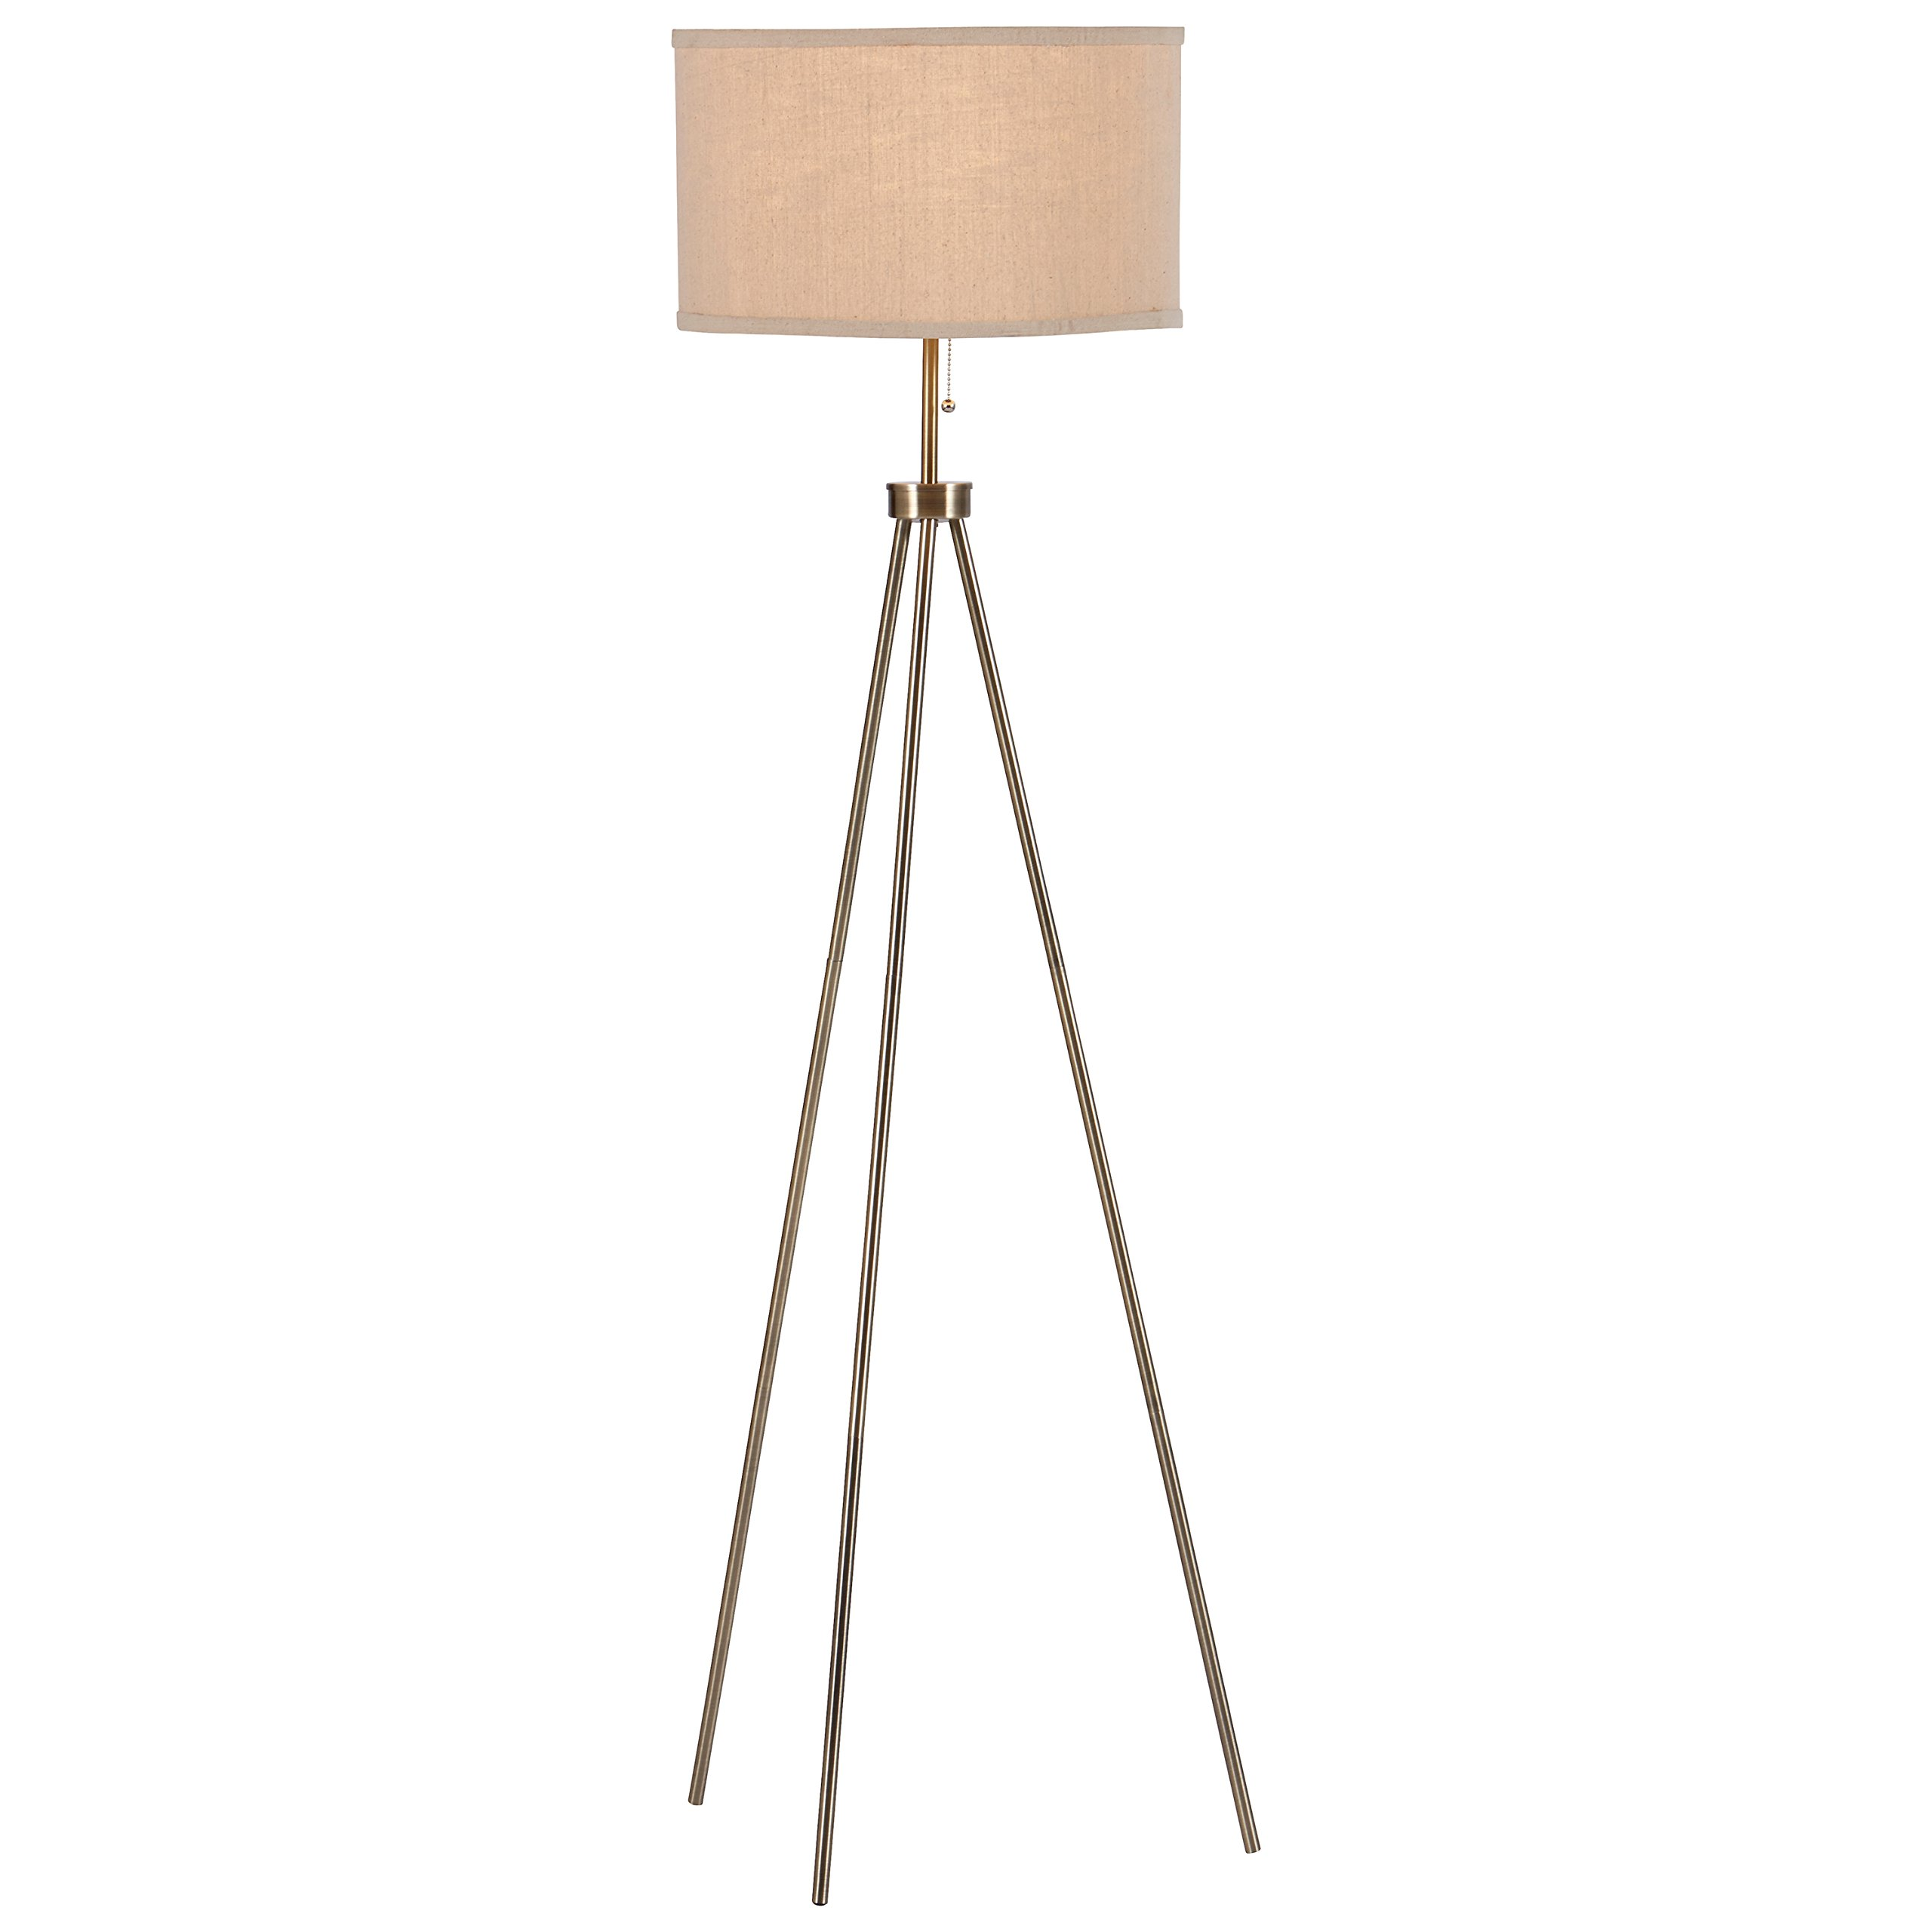 Rivet Minimalist Tripod Floor Lamp with Bulb, 15'' x 15'' x 58.25'', Antique Brass